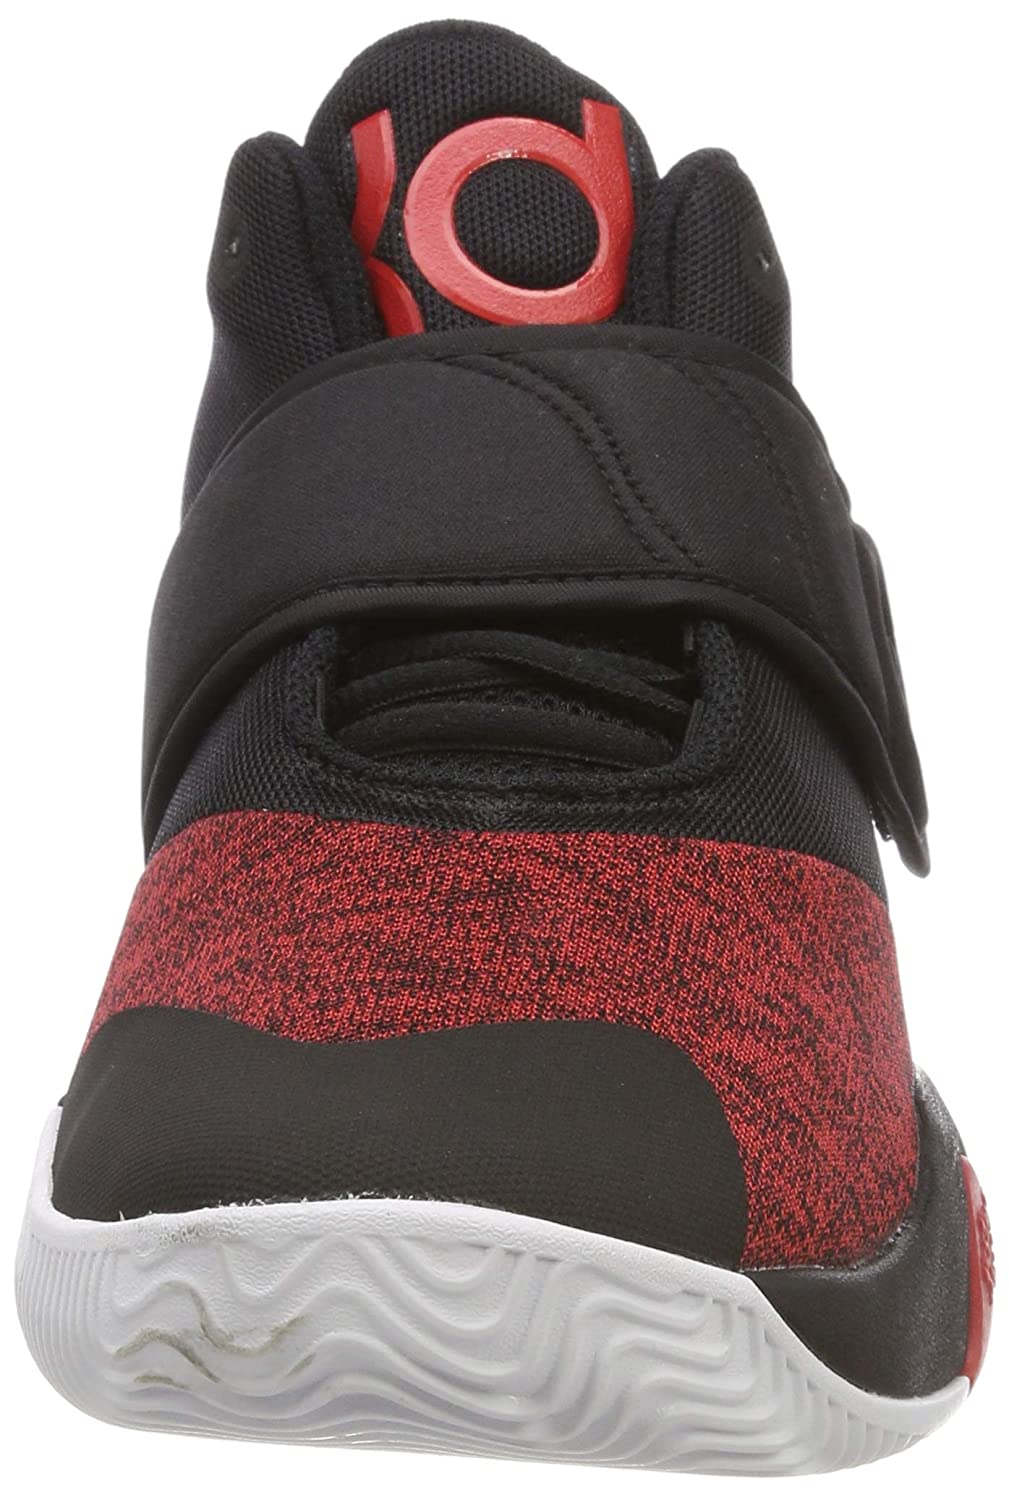 c02de4f2f9ff Nike Men s KD Trey 5 VI Black University Red-White Basketball Shoes (AA7067- 006) (UK-10 (US-11))  Buy Online at Low Prices in India - Amazon.in